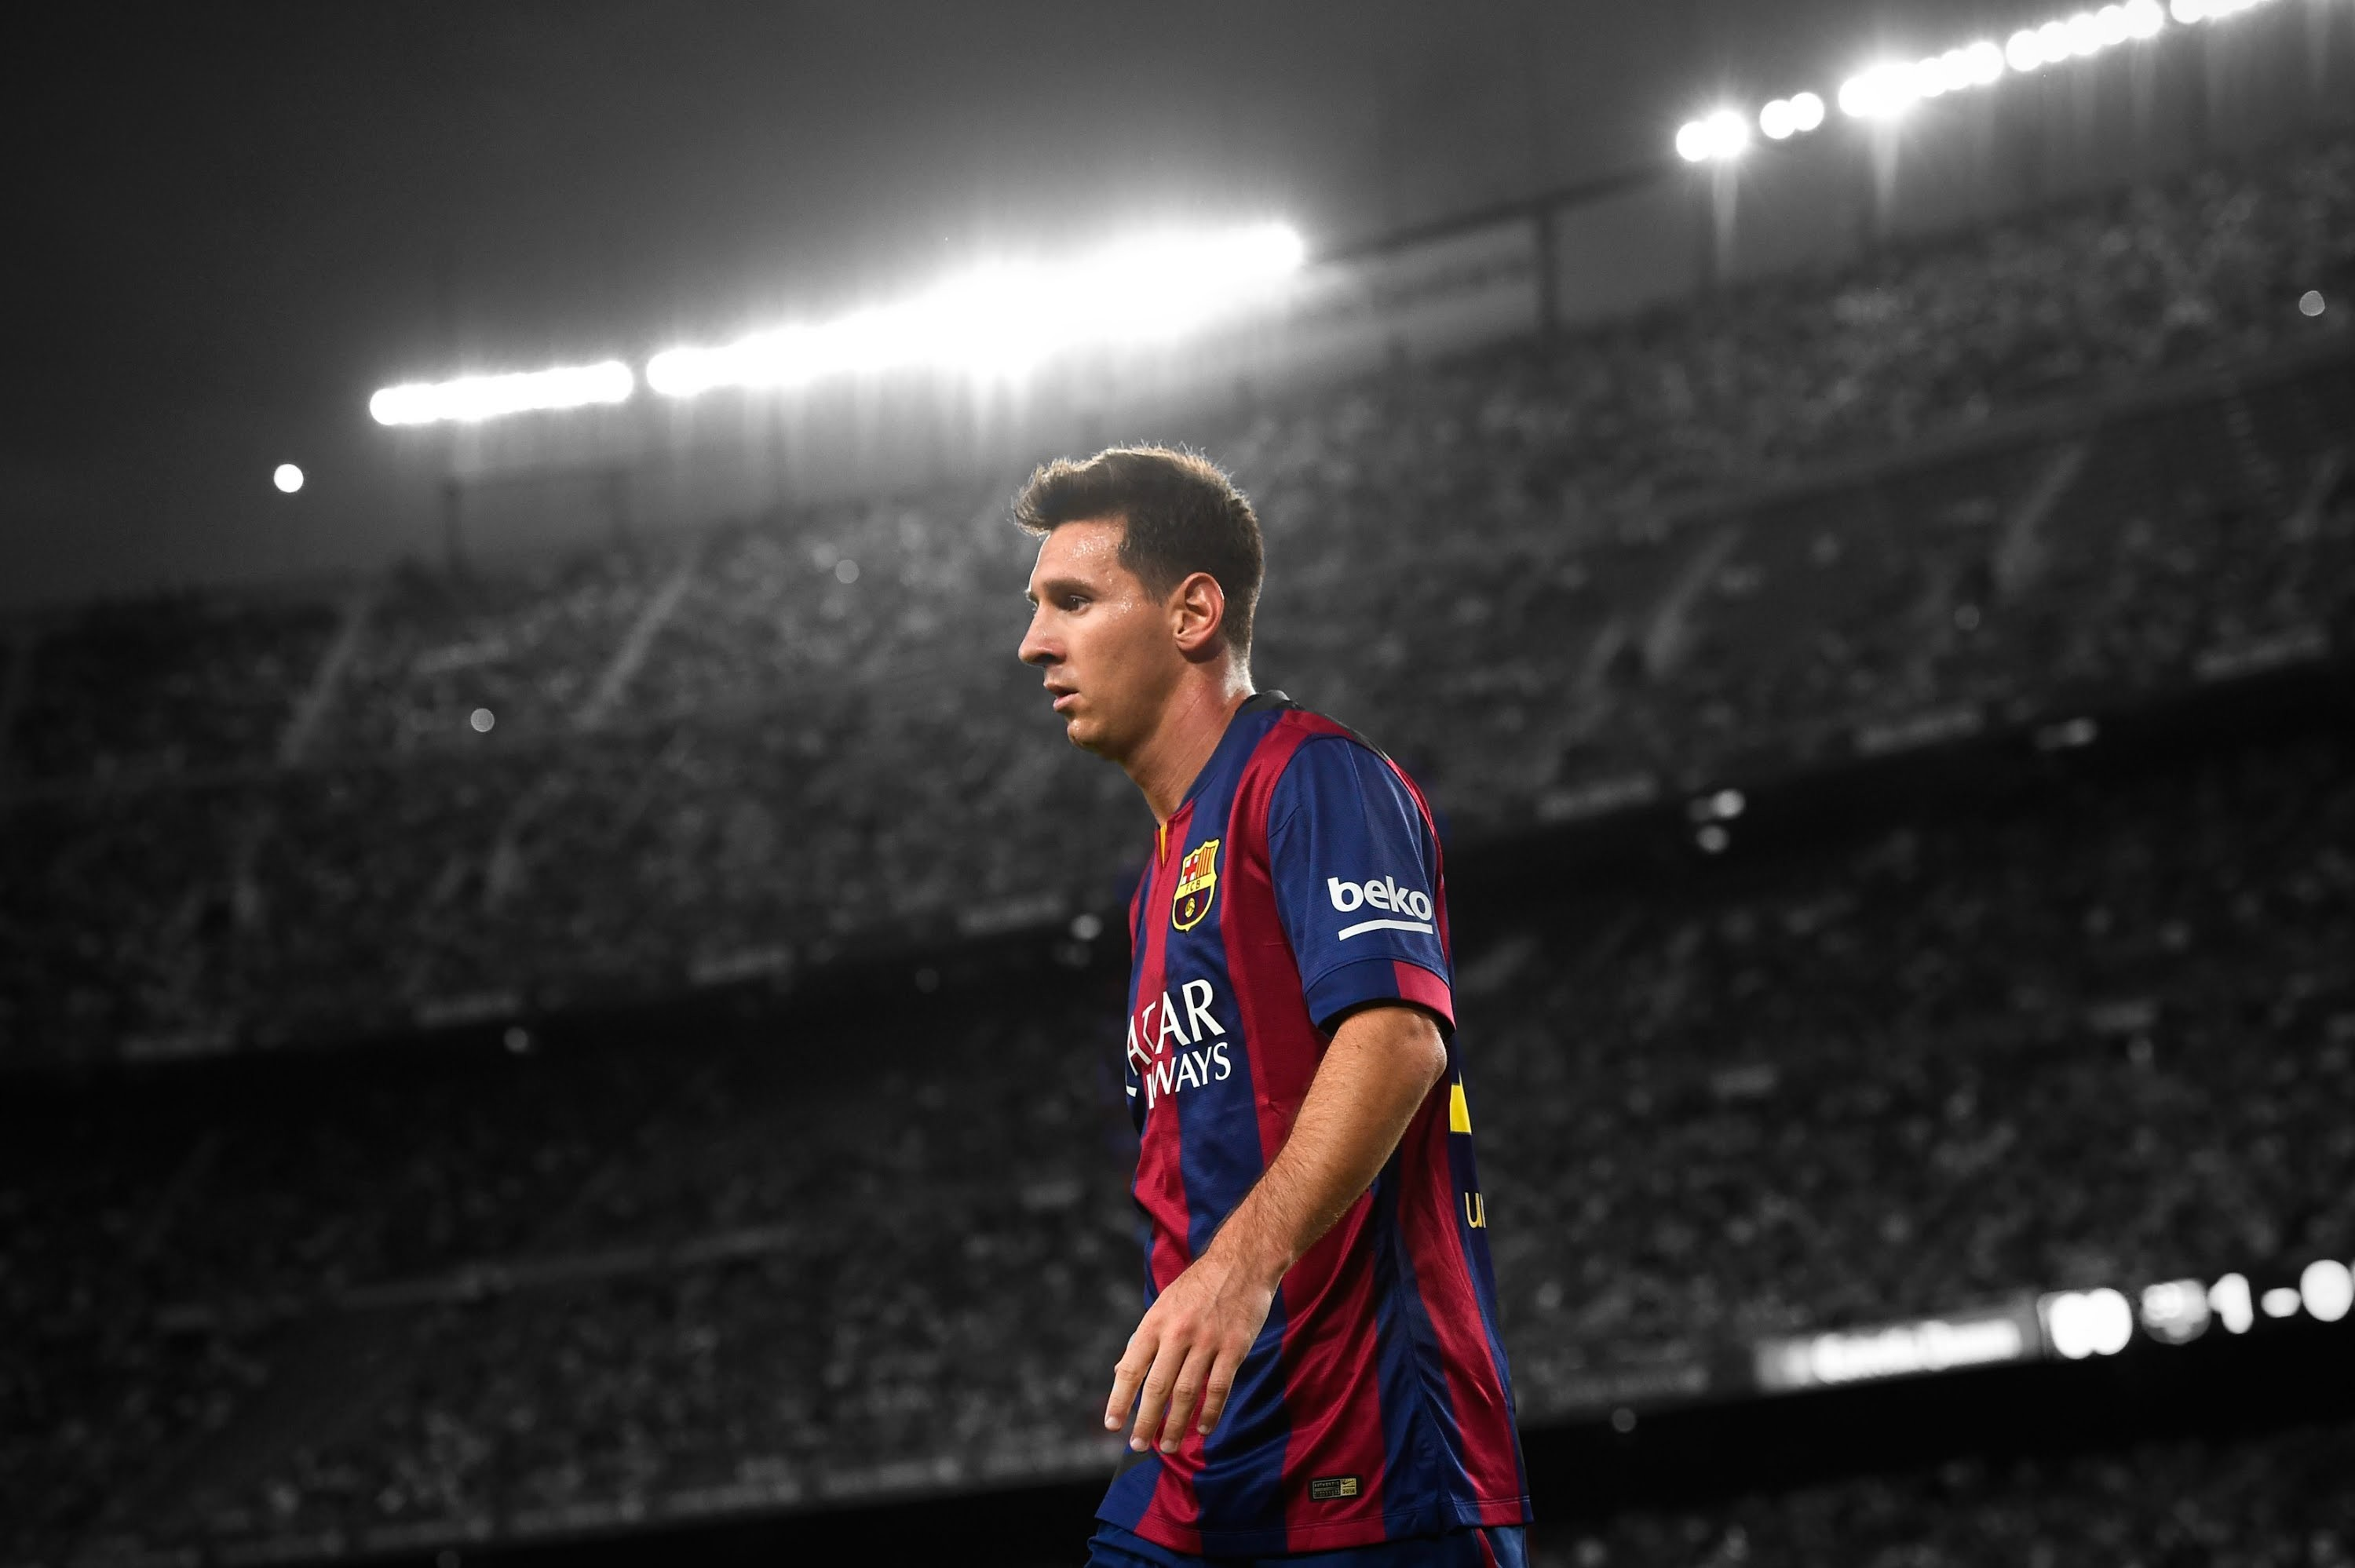 Lionel Messi Full Size Hd: Lionel Messi 2018 Wallpaper HD 1080p (71+ Images